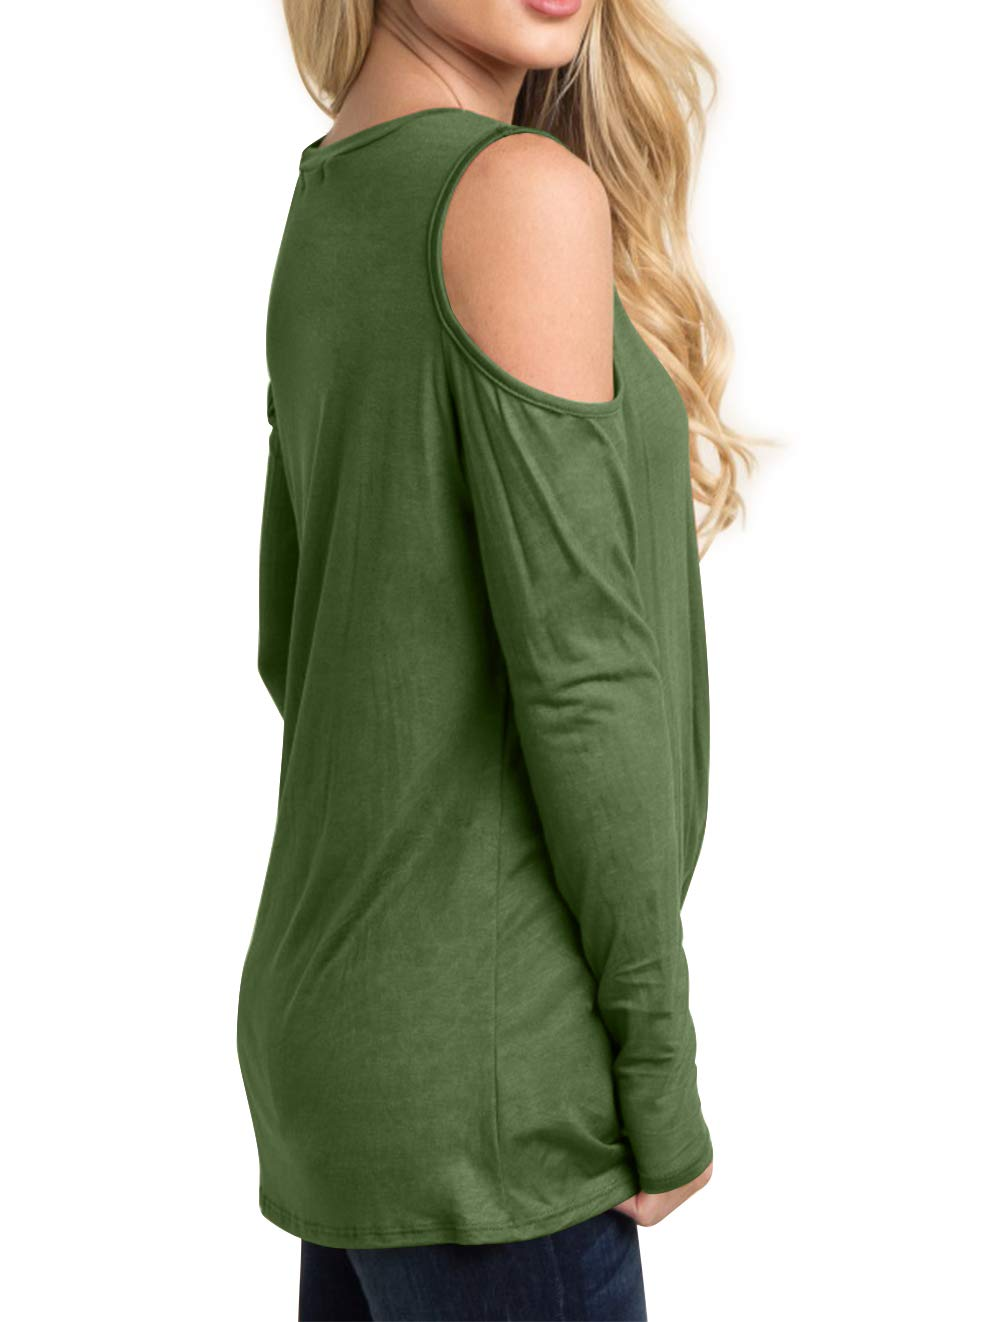 Eanklosco Women's Long Sleeve Cold Shoulder Cut Out T Shirts Casual Knot Tunic Tops (Army Green, 2XL)